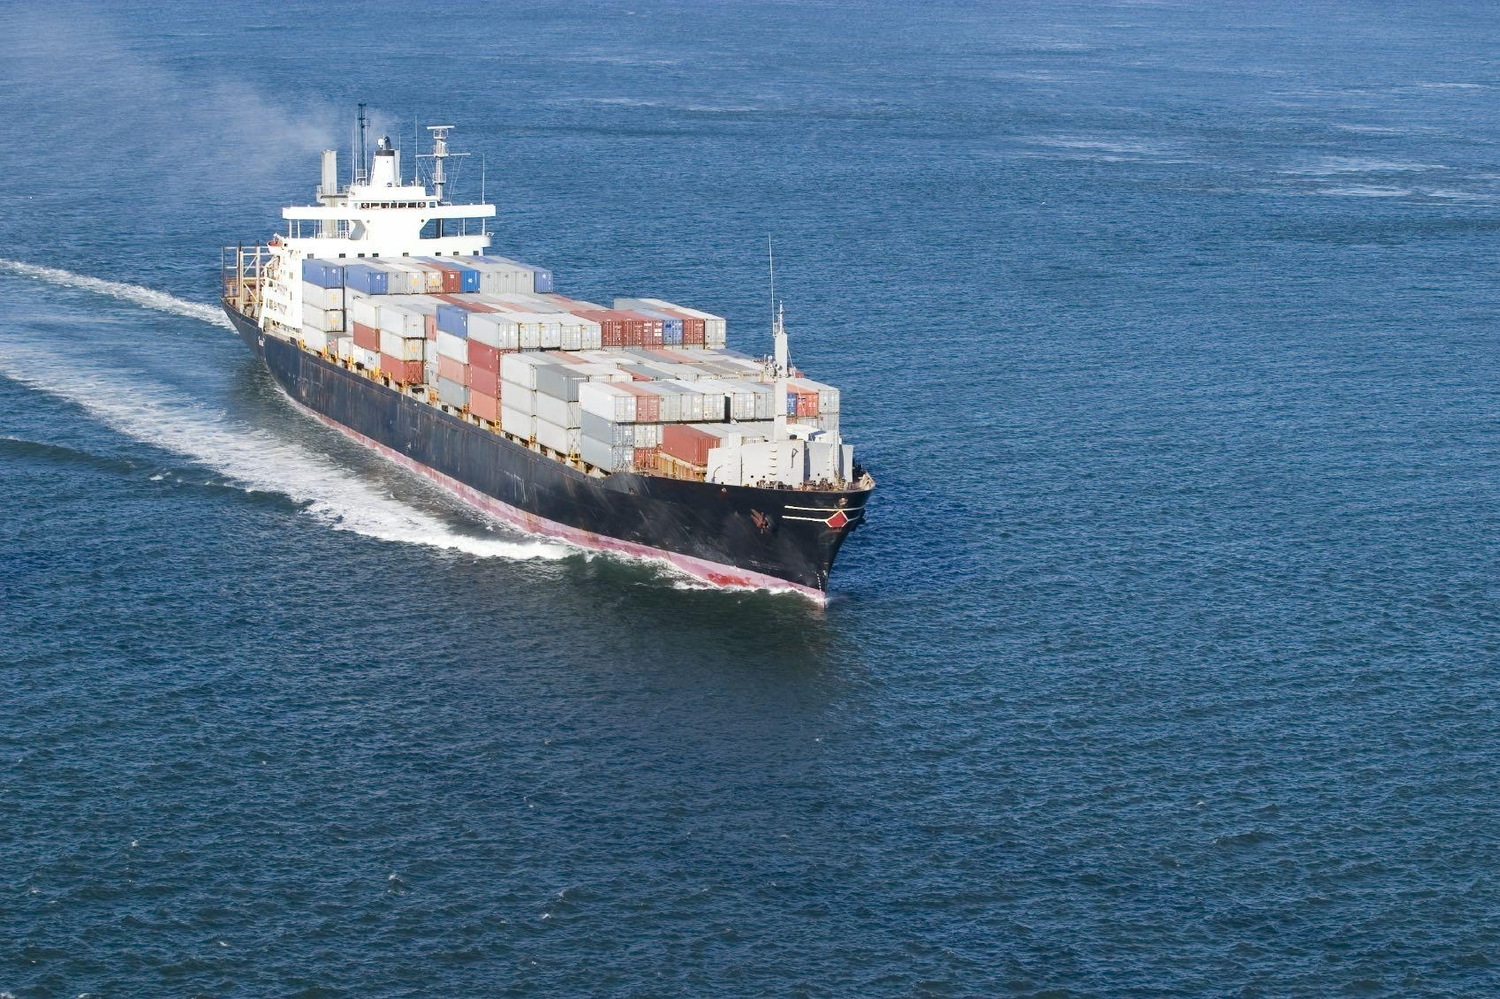 Full container ship transporting cargo in the ocean